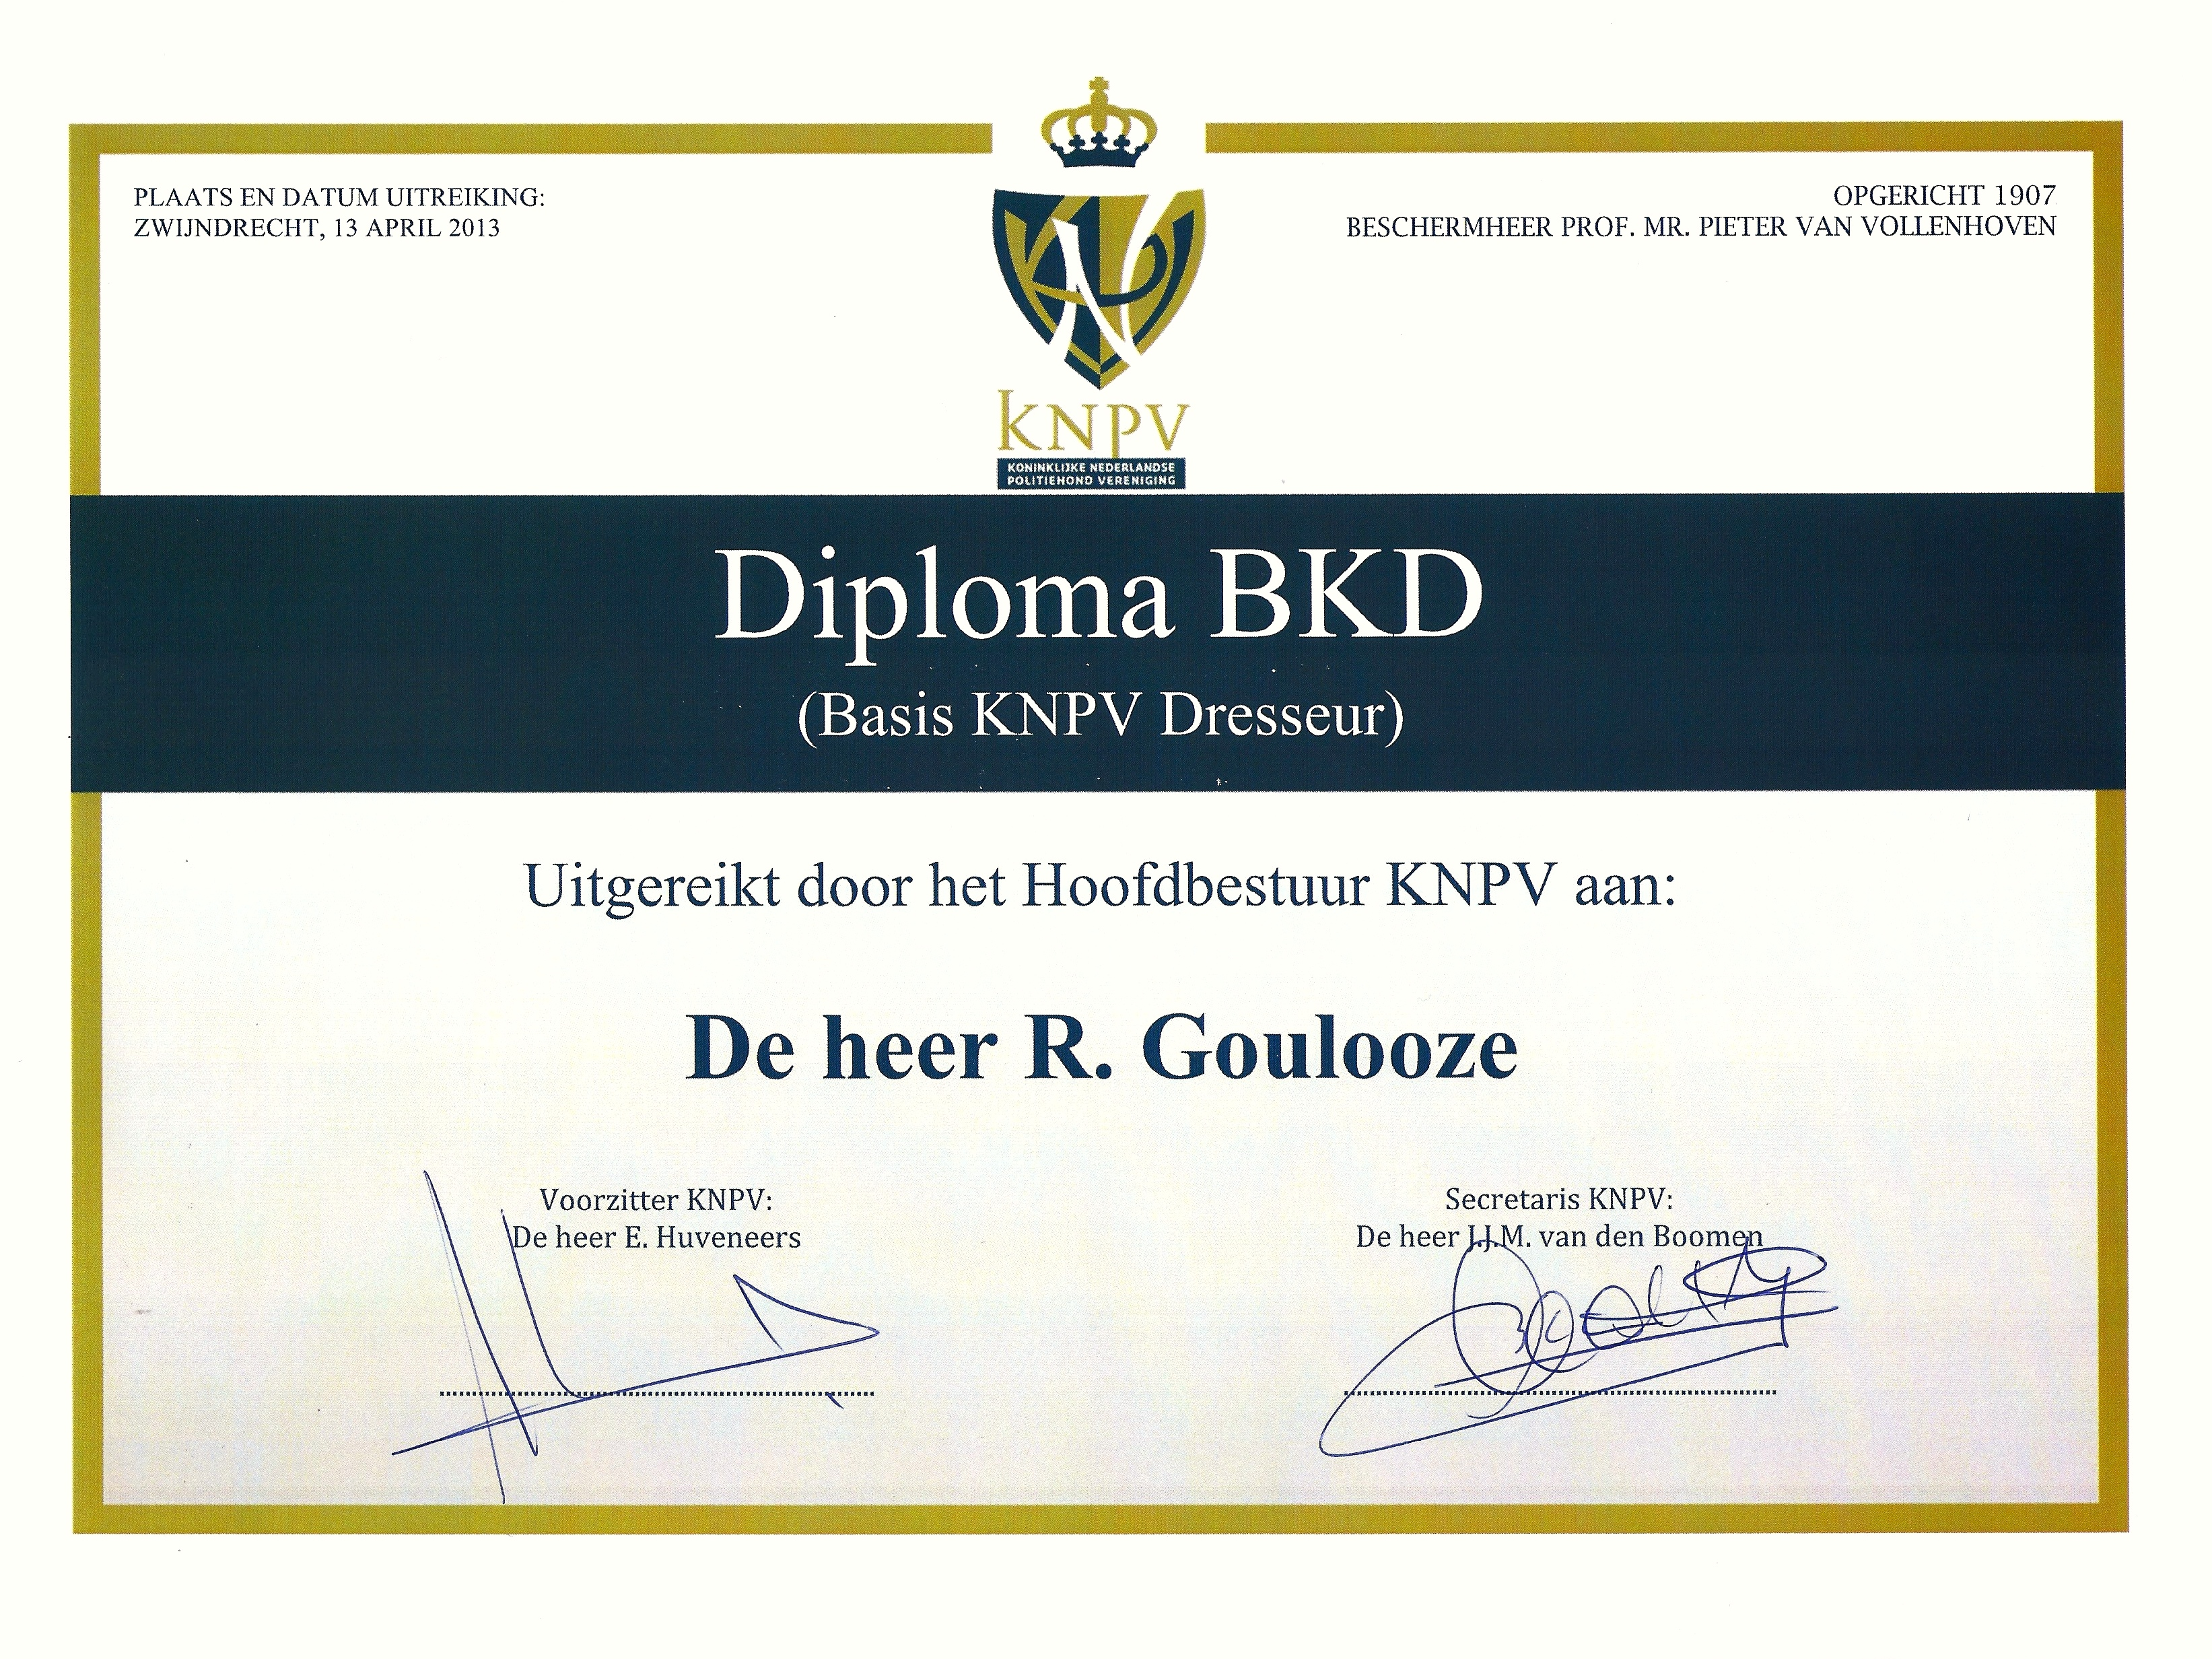 BKD Ruud Goulooze